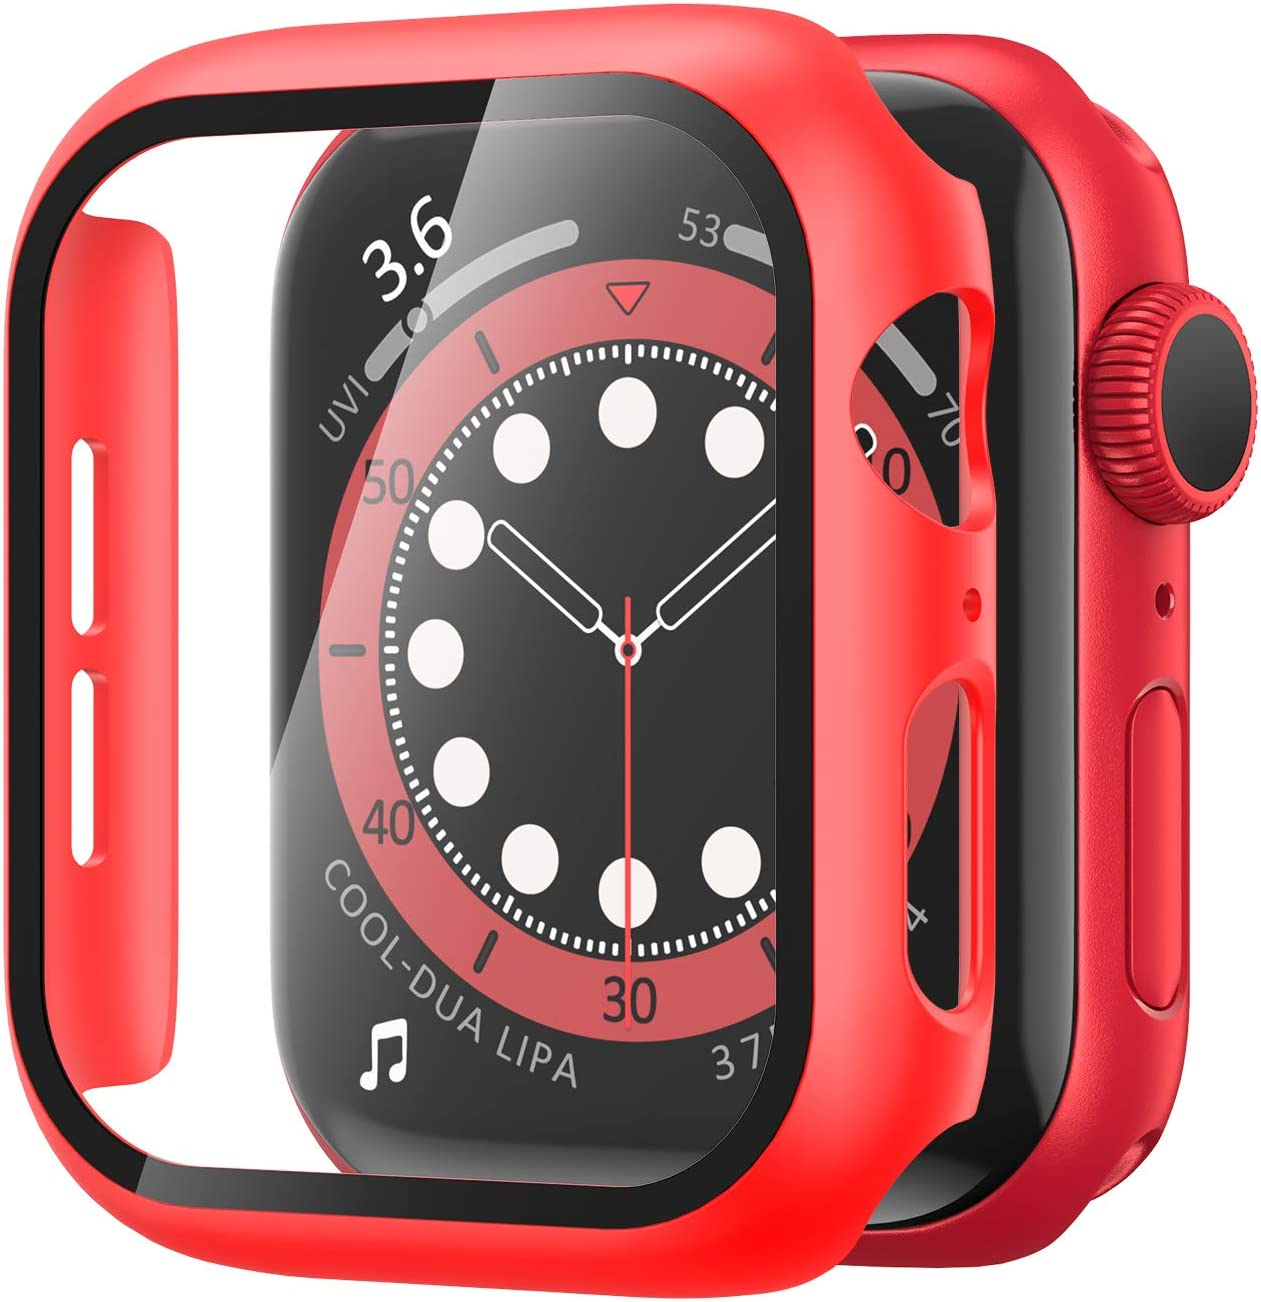 YMHML Case compatible with Apple Watch Series 6 / SE 44mm Built-in Tempered Glass Screen Protector, Hard PC Protector Cover Thin Guard Full Coverage for iWatch 44mm (Red)